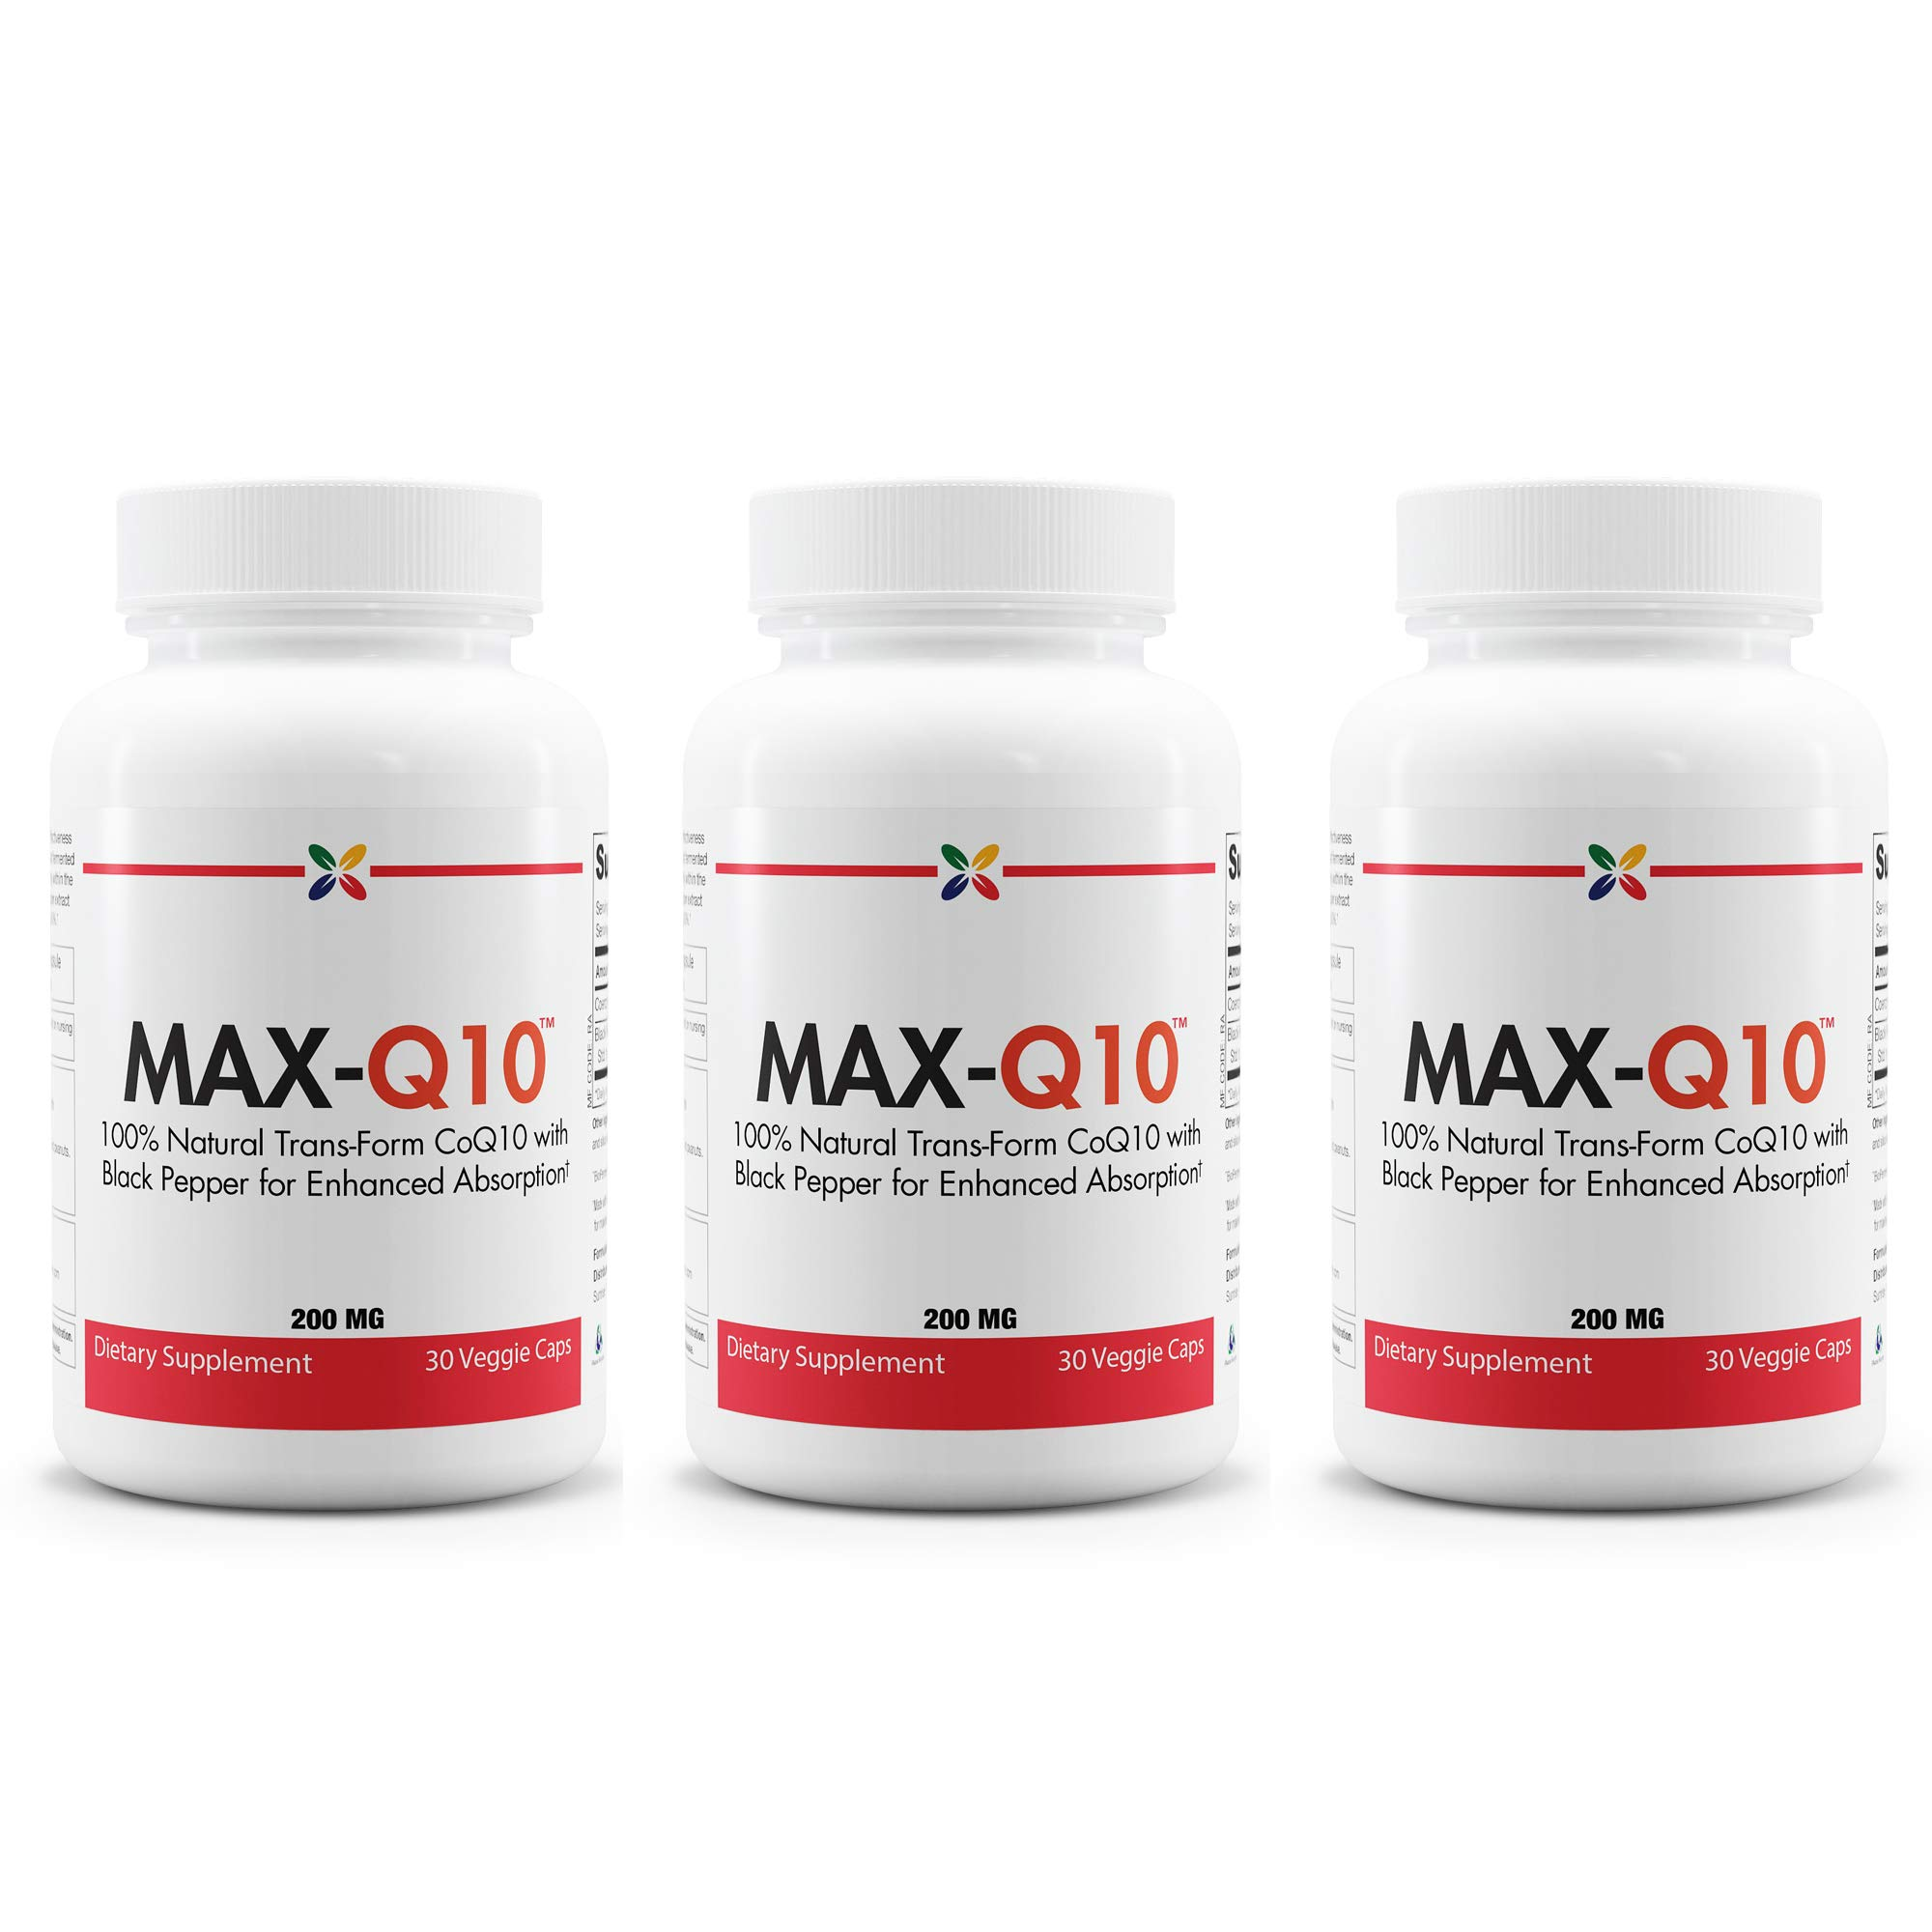 Stop Aging Now - MAX-Q10 CoEnzyme Q10 200 mg - 100% Natural Trans-Form CoQ10 with Black Pepper for Enhanced Absorption - 90 Veggie Caps (3 Bottles)